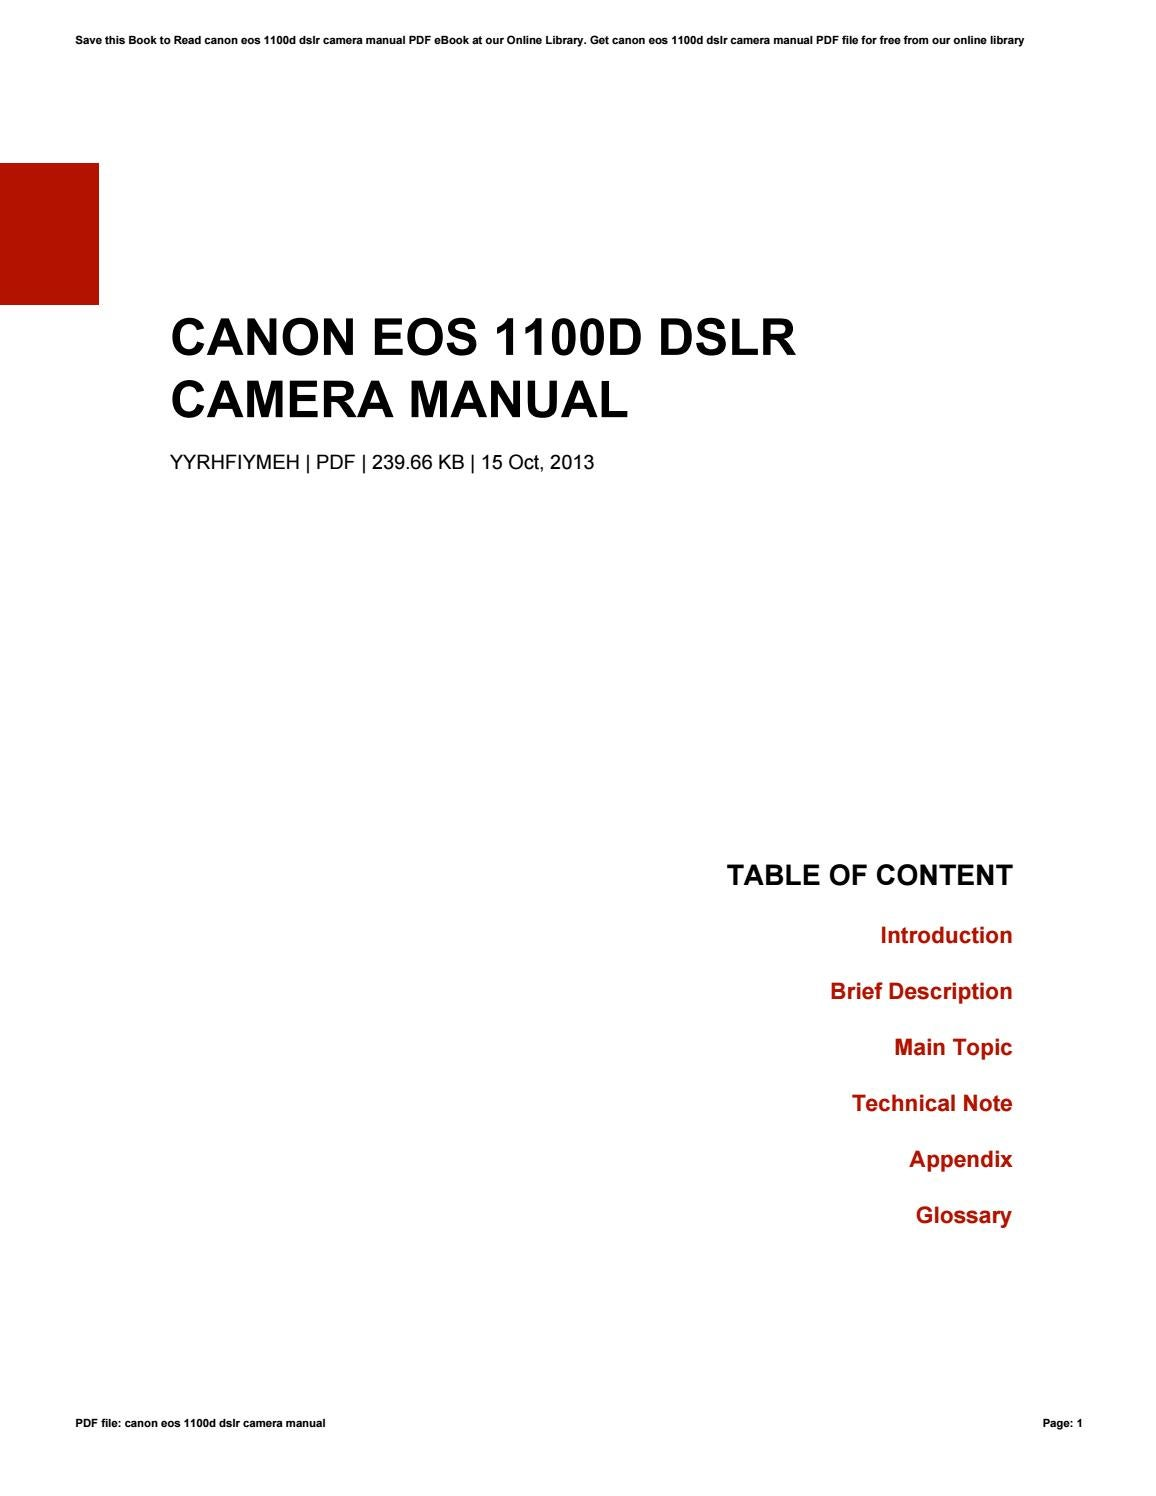 Canon eos 1100d dslr camera manual by NorrisRandall2987